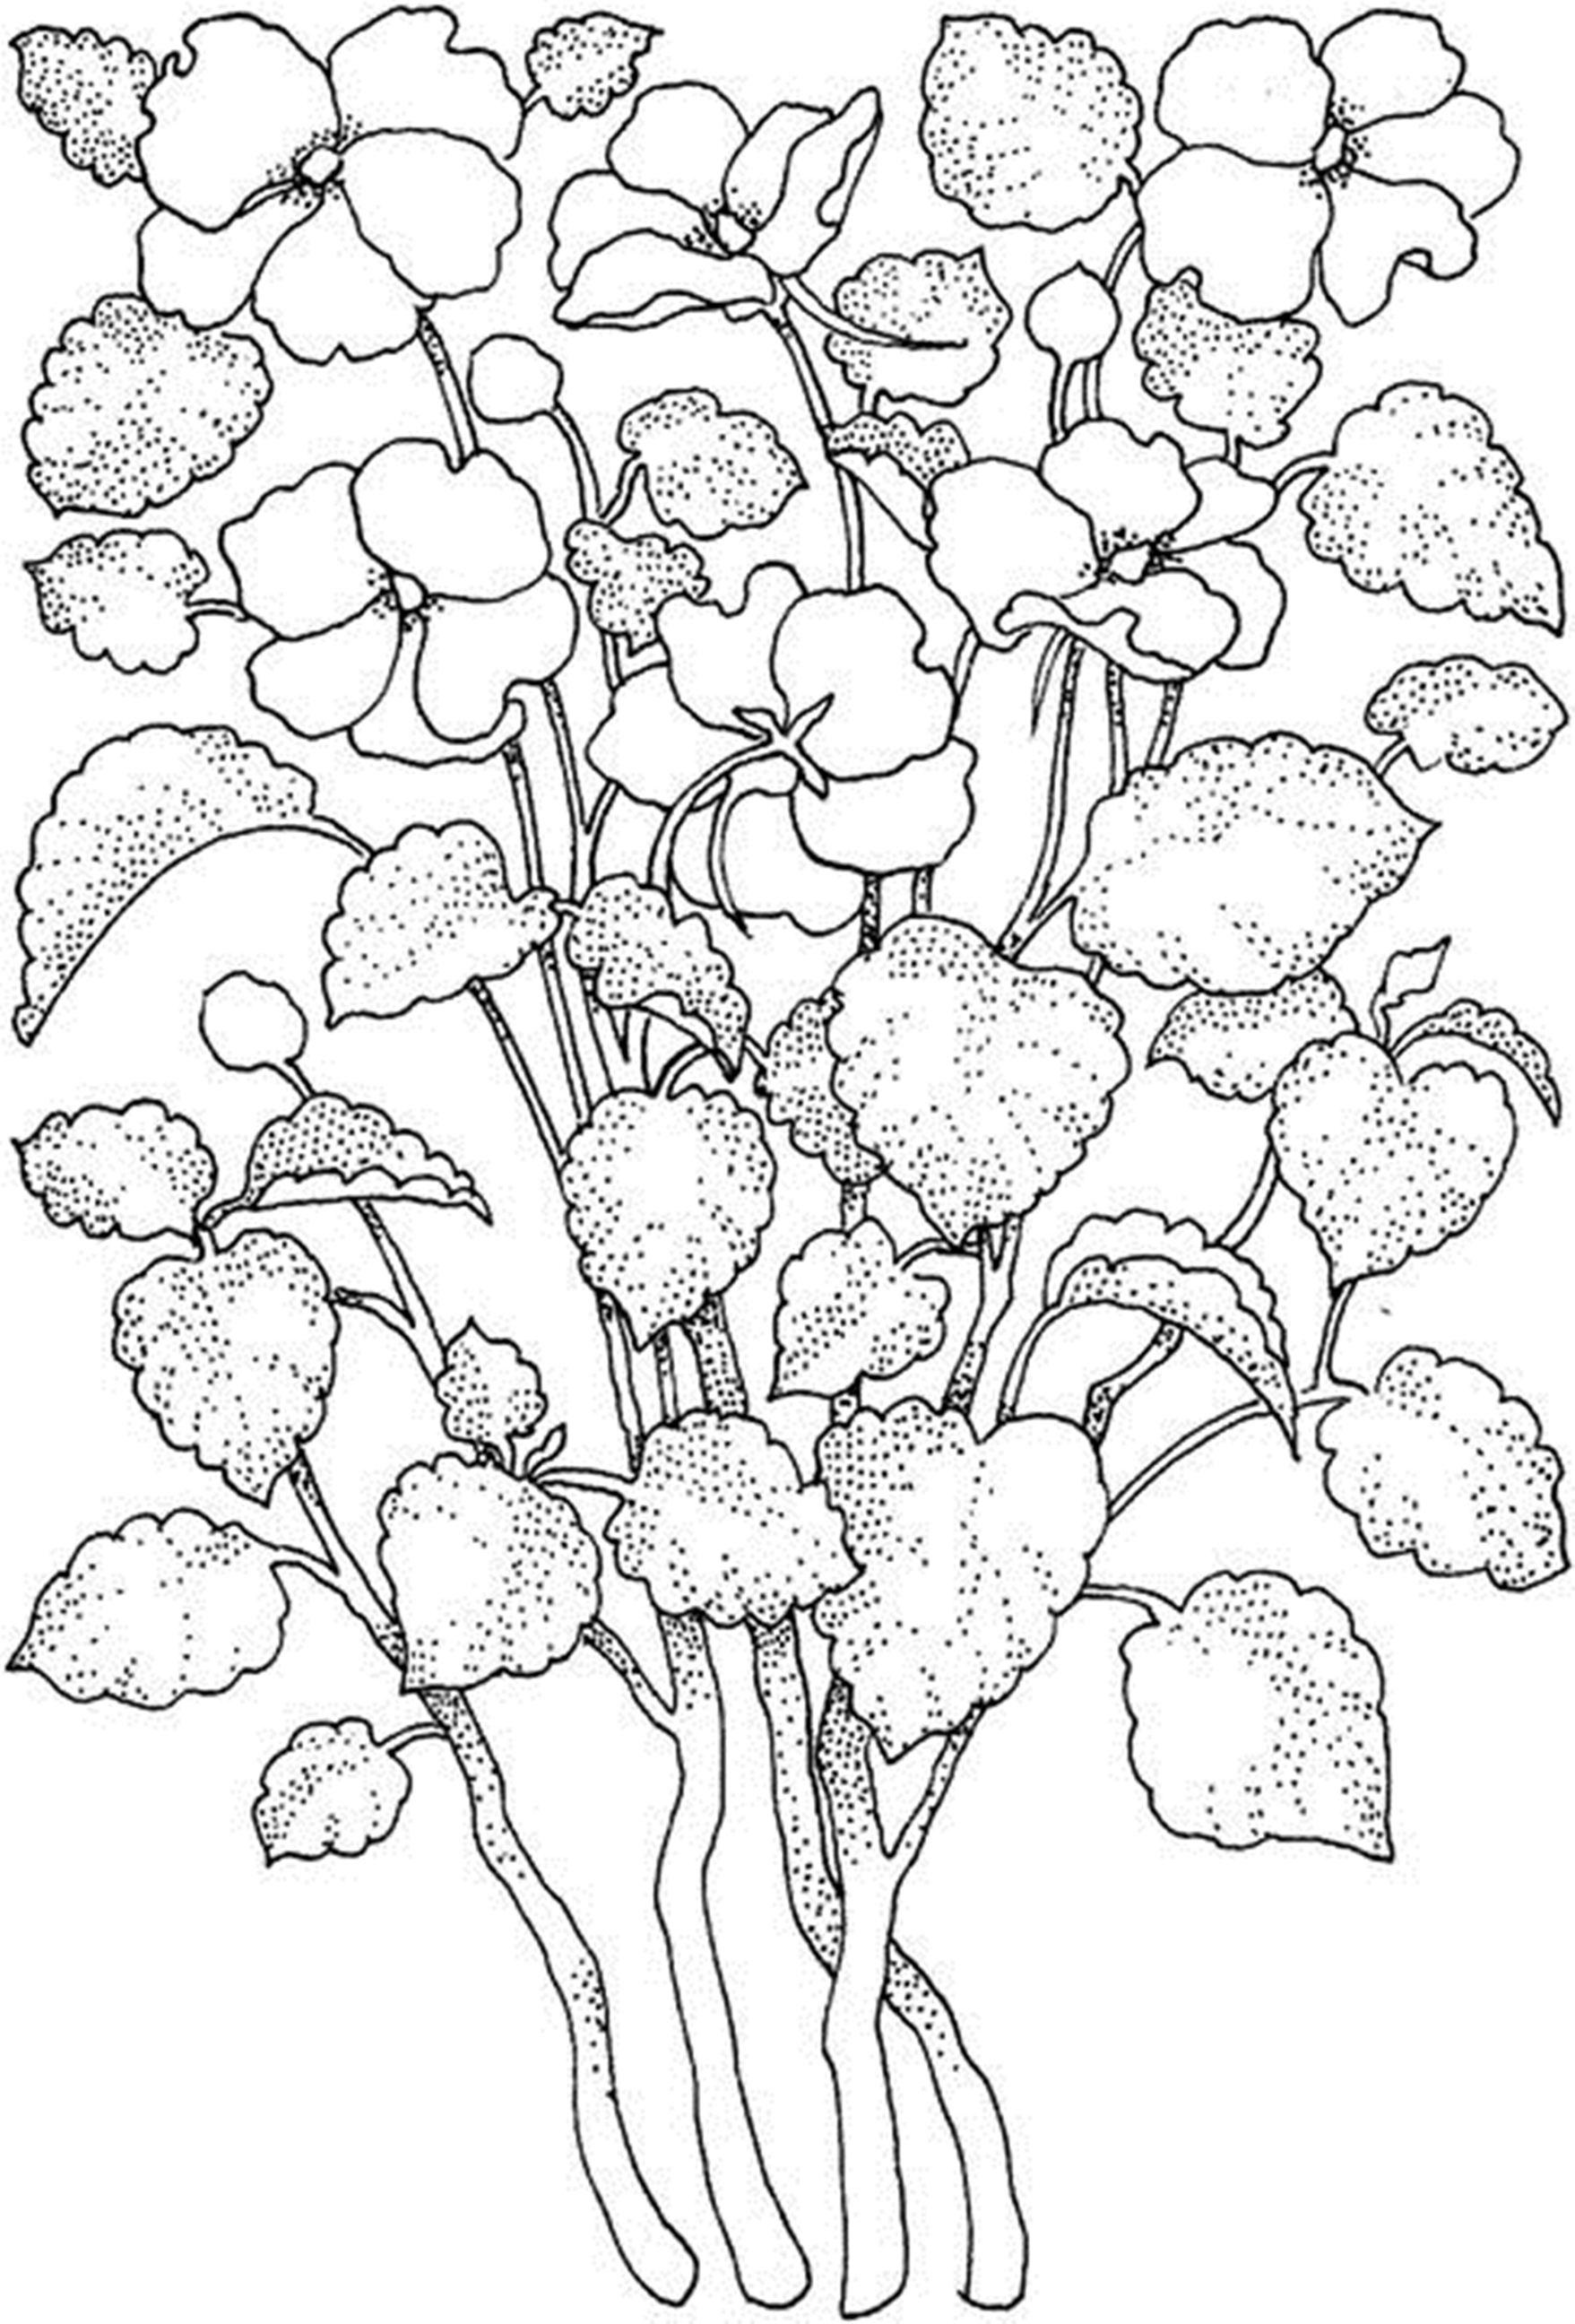 pictures of flowers to color detailed flower coloring pages to download and print for free pictures to color flowers of